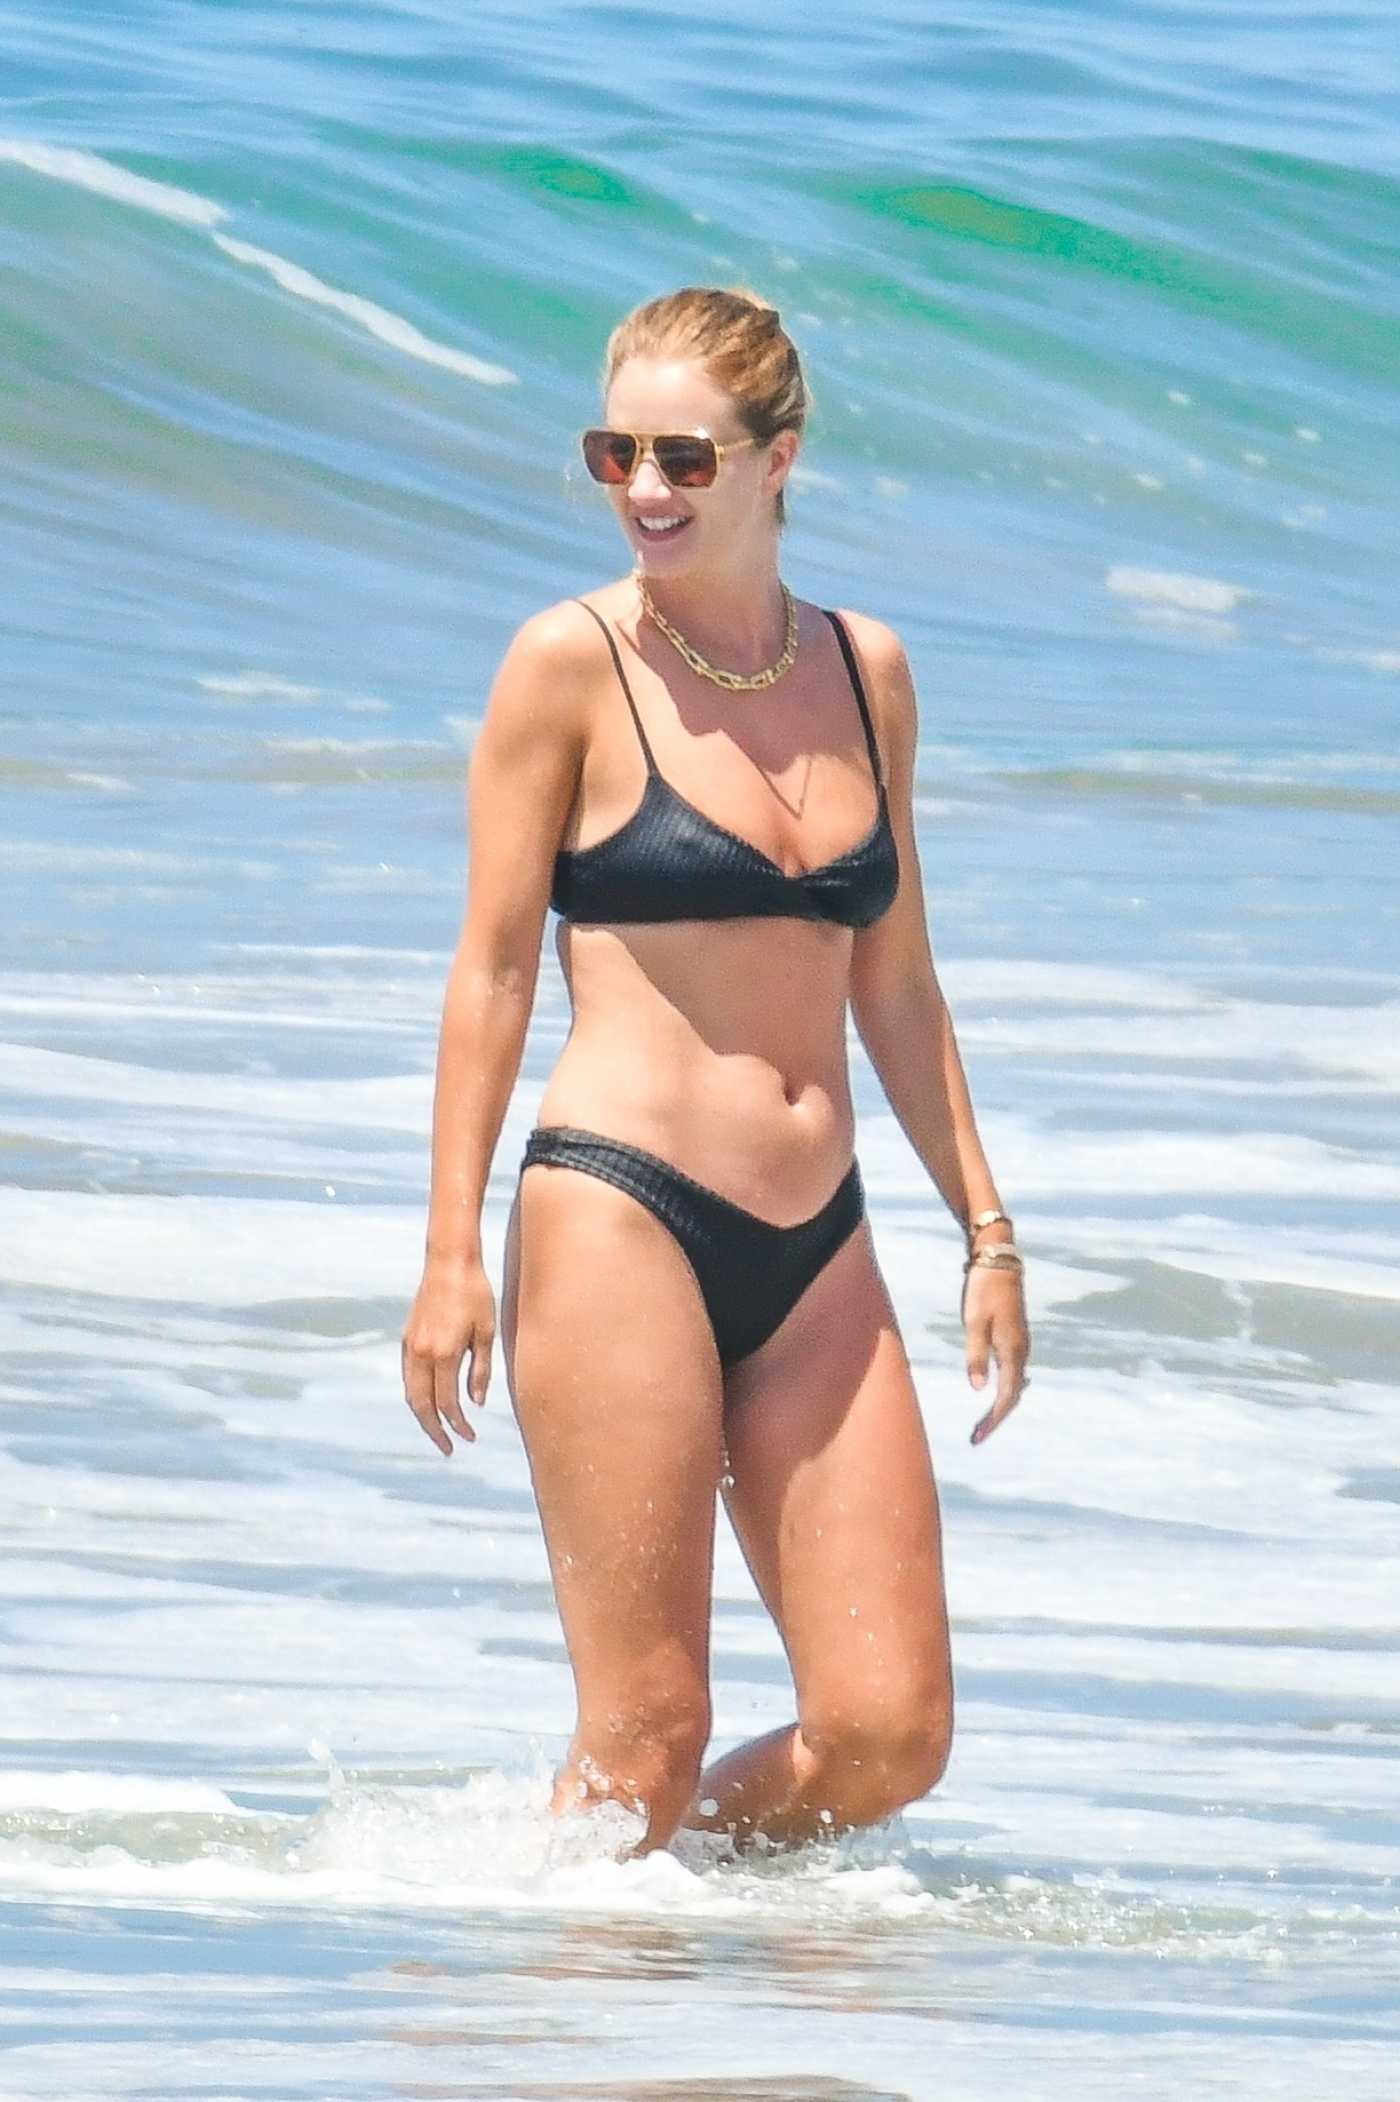 Rosie Huntington-Whiteley in a Black Bikini on the Beach in Malibu 06/14/2020